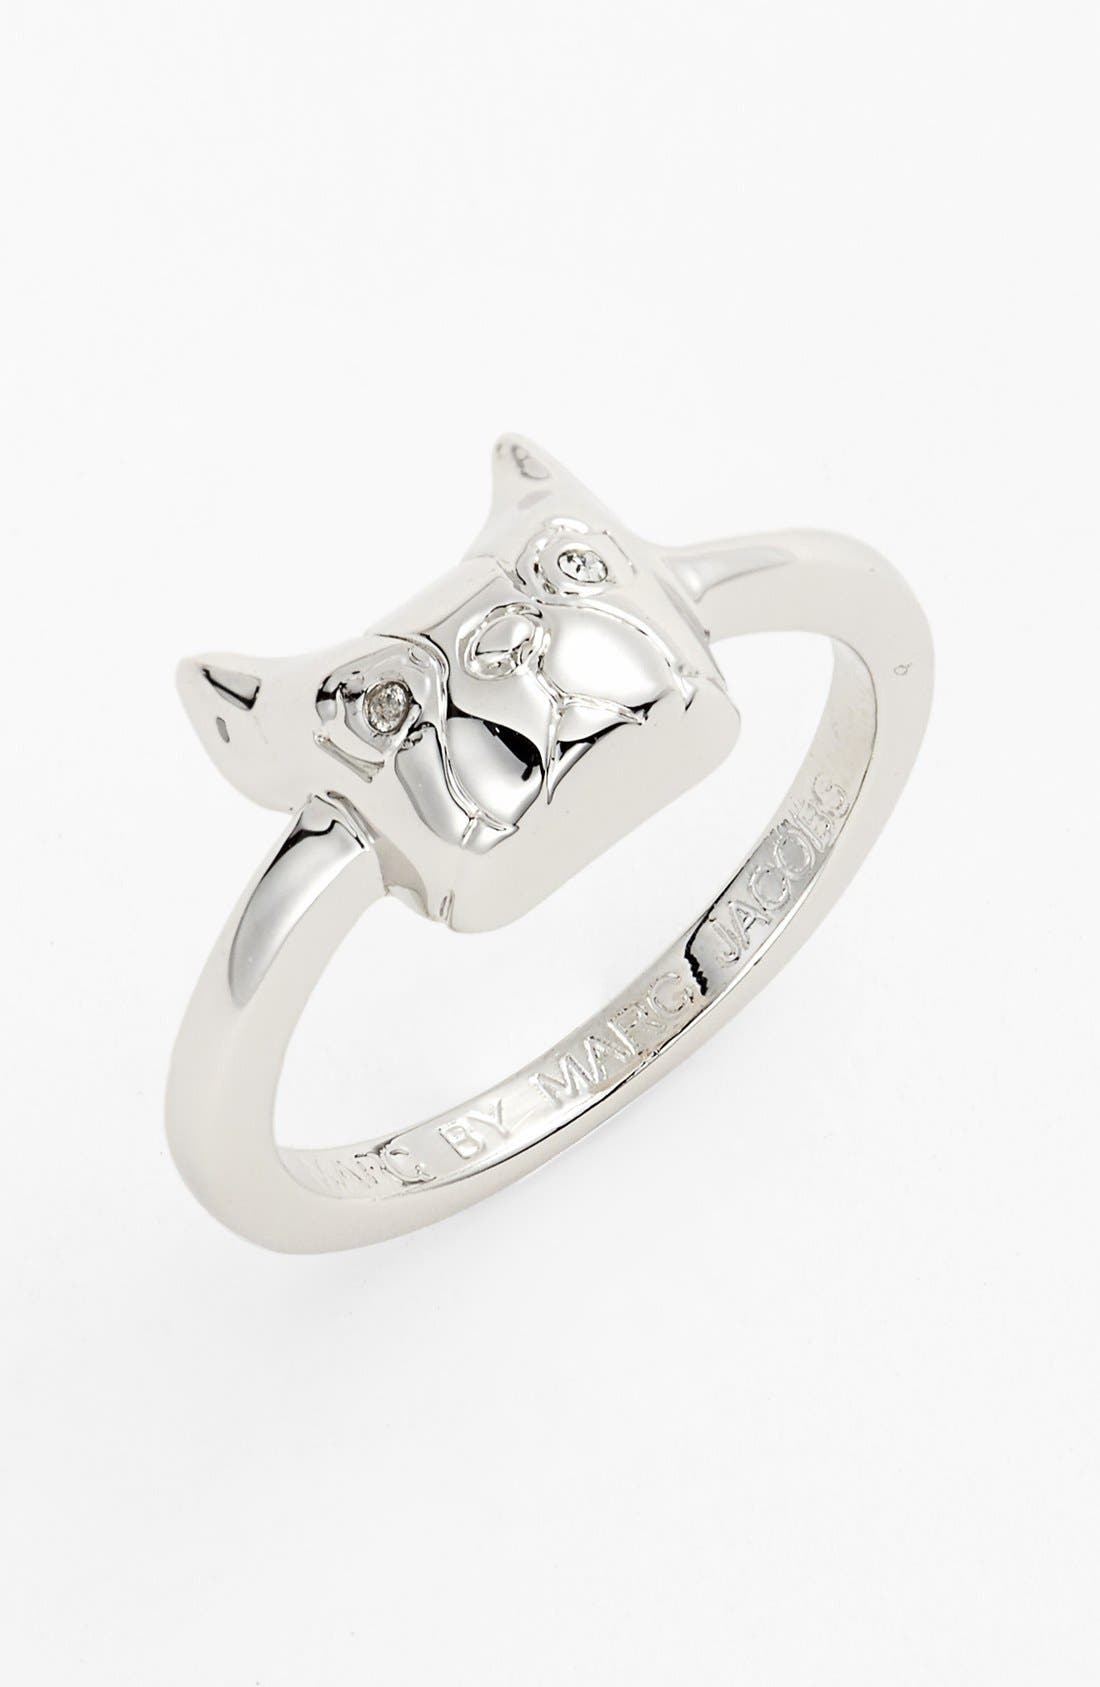 'Dynamite - Rue' Cat Ring,                             Main thumbnail 1, color,                             040